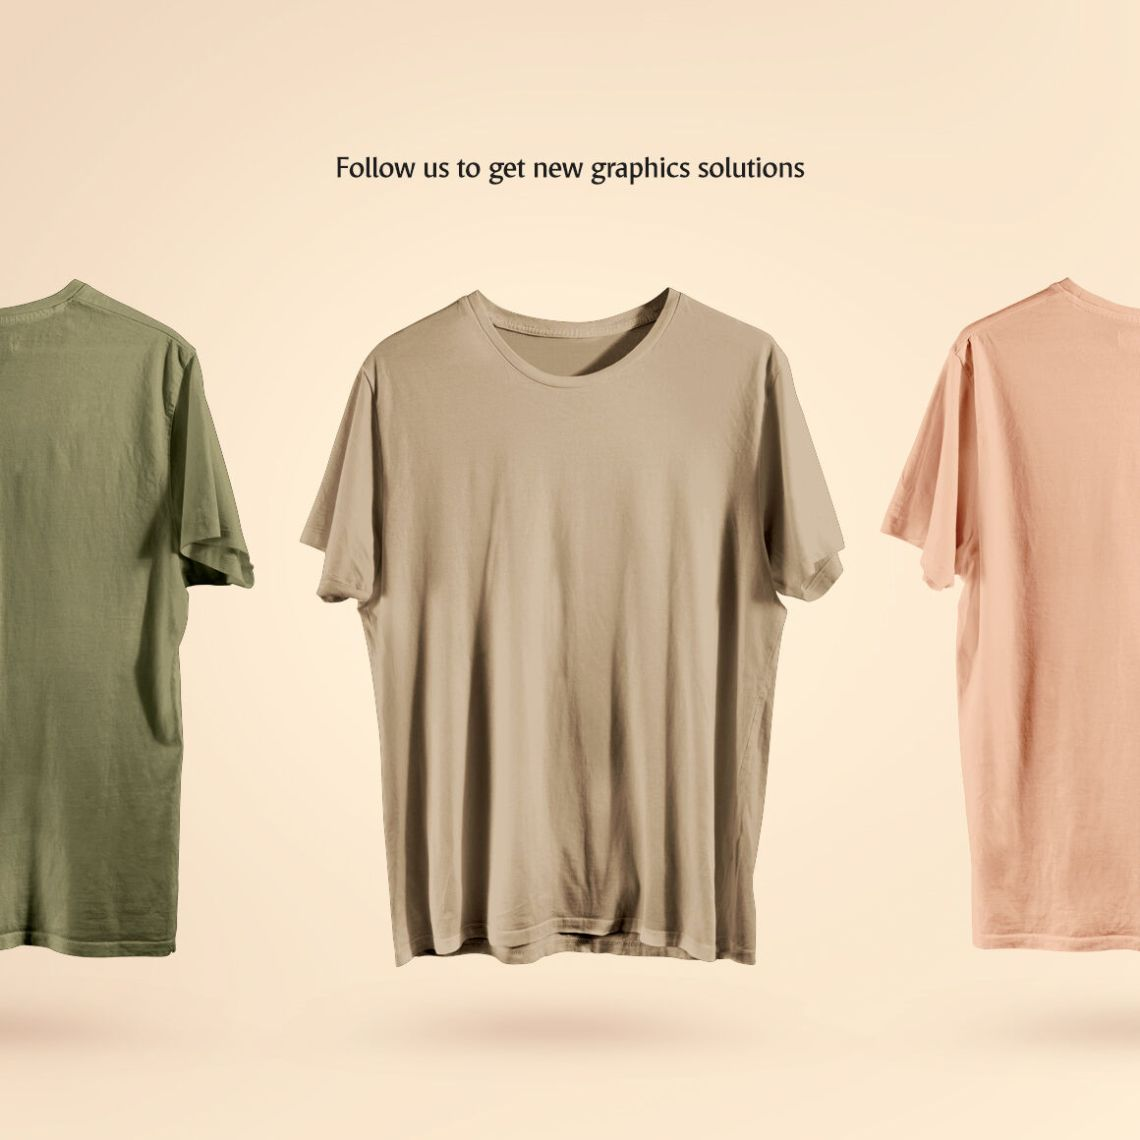 Download Uniform Mockup Psd Yellowimages